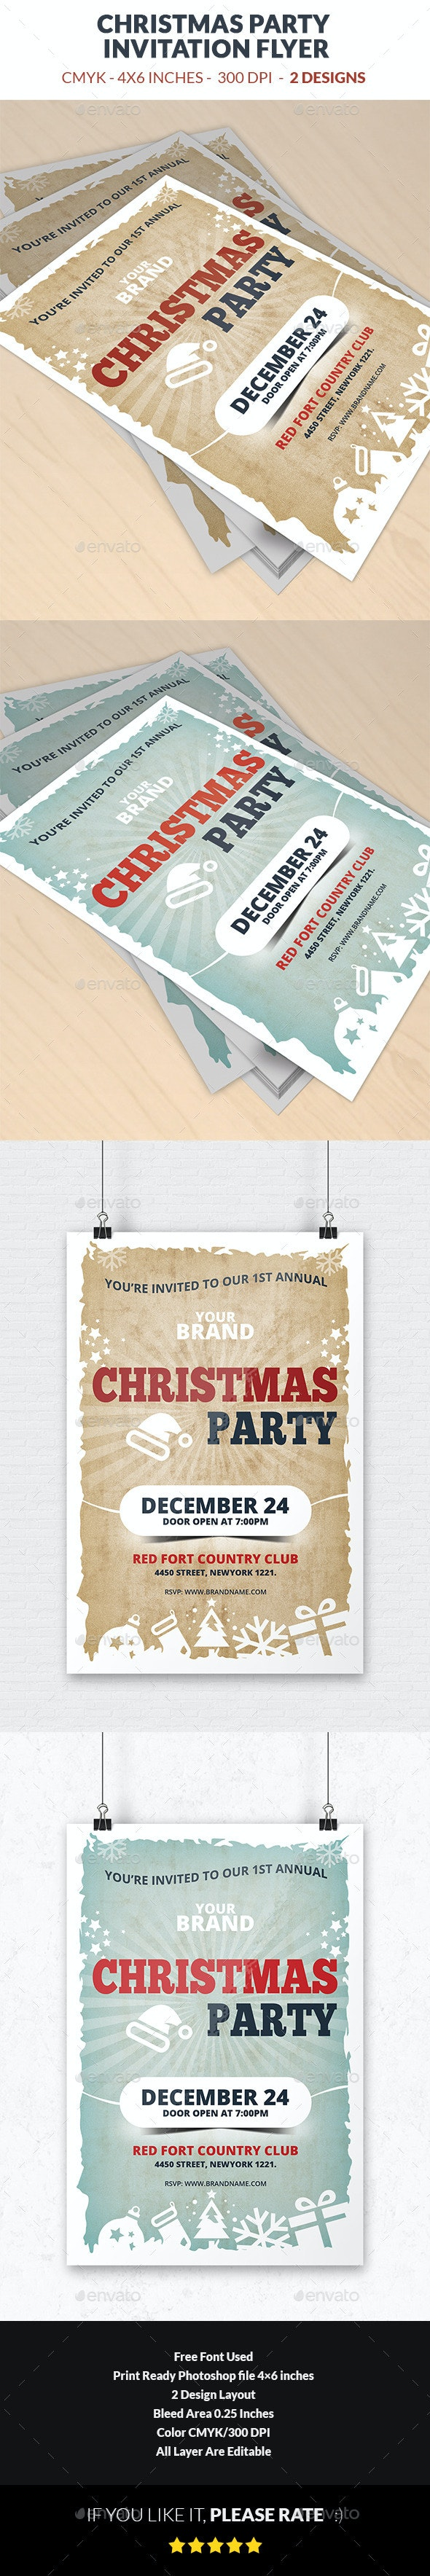 Christmas Party Invitation Flyer Template - Events Flyers